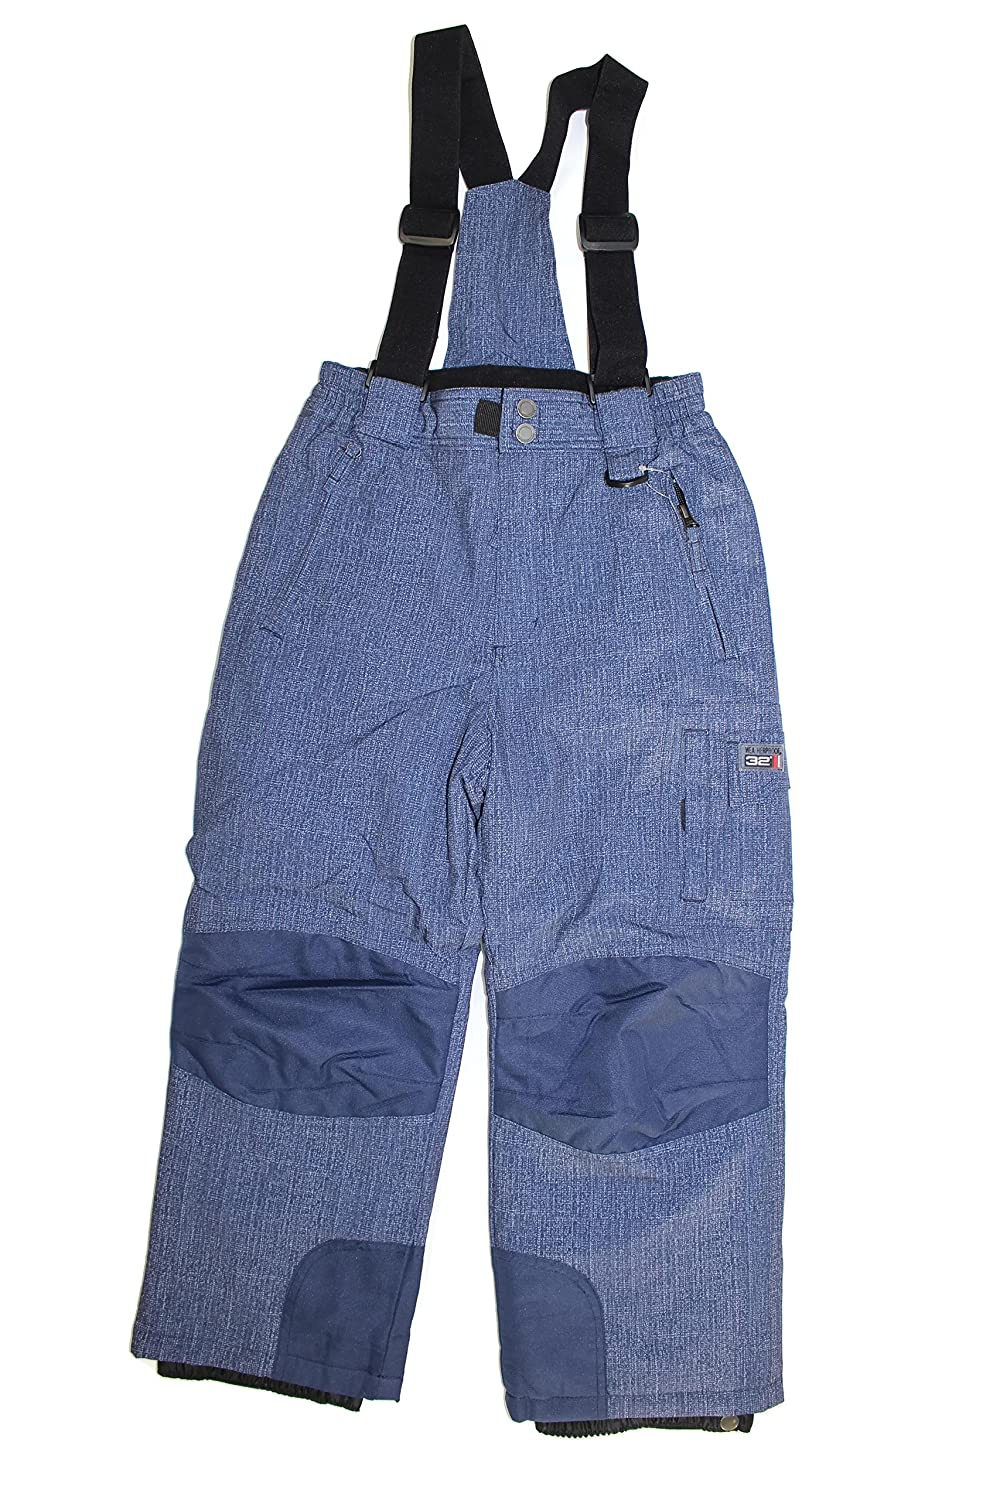 Weatherproof 32 Degrees Boys Winter Snow Overall Suspender Bib Pant